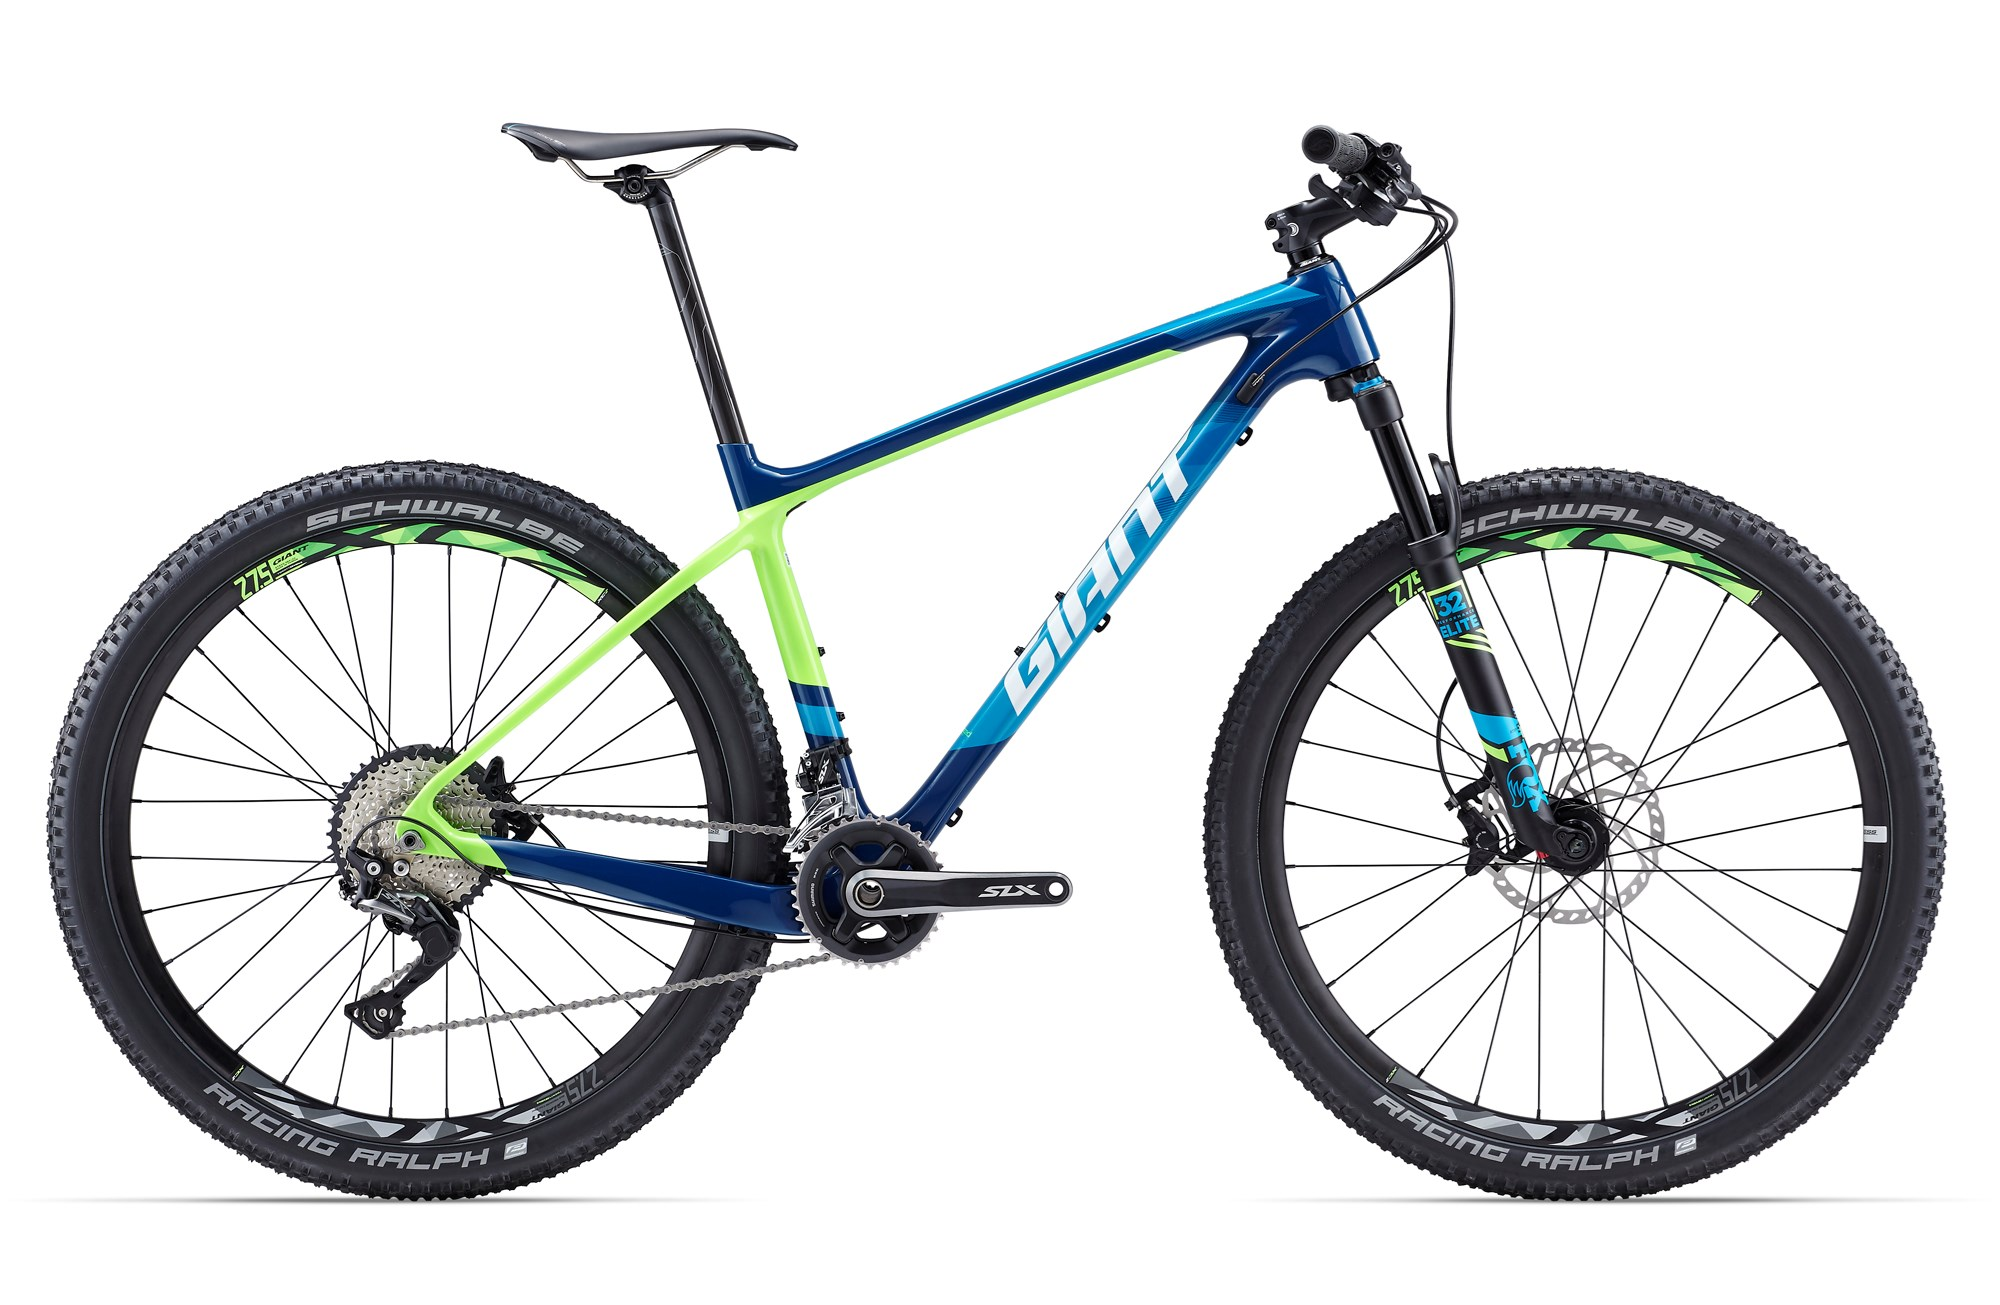 VTT Giant XTC Advanced 2 2017